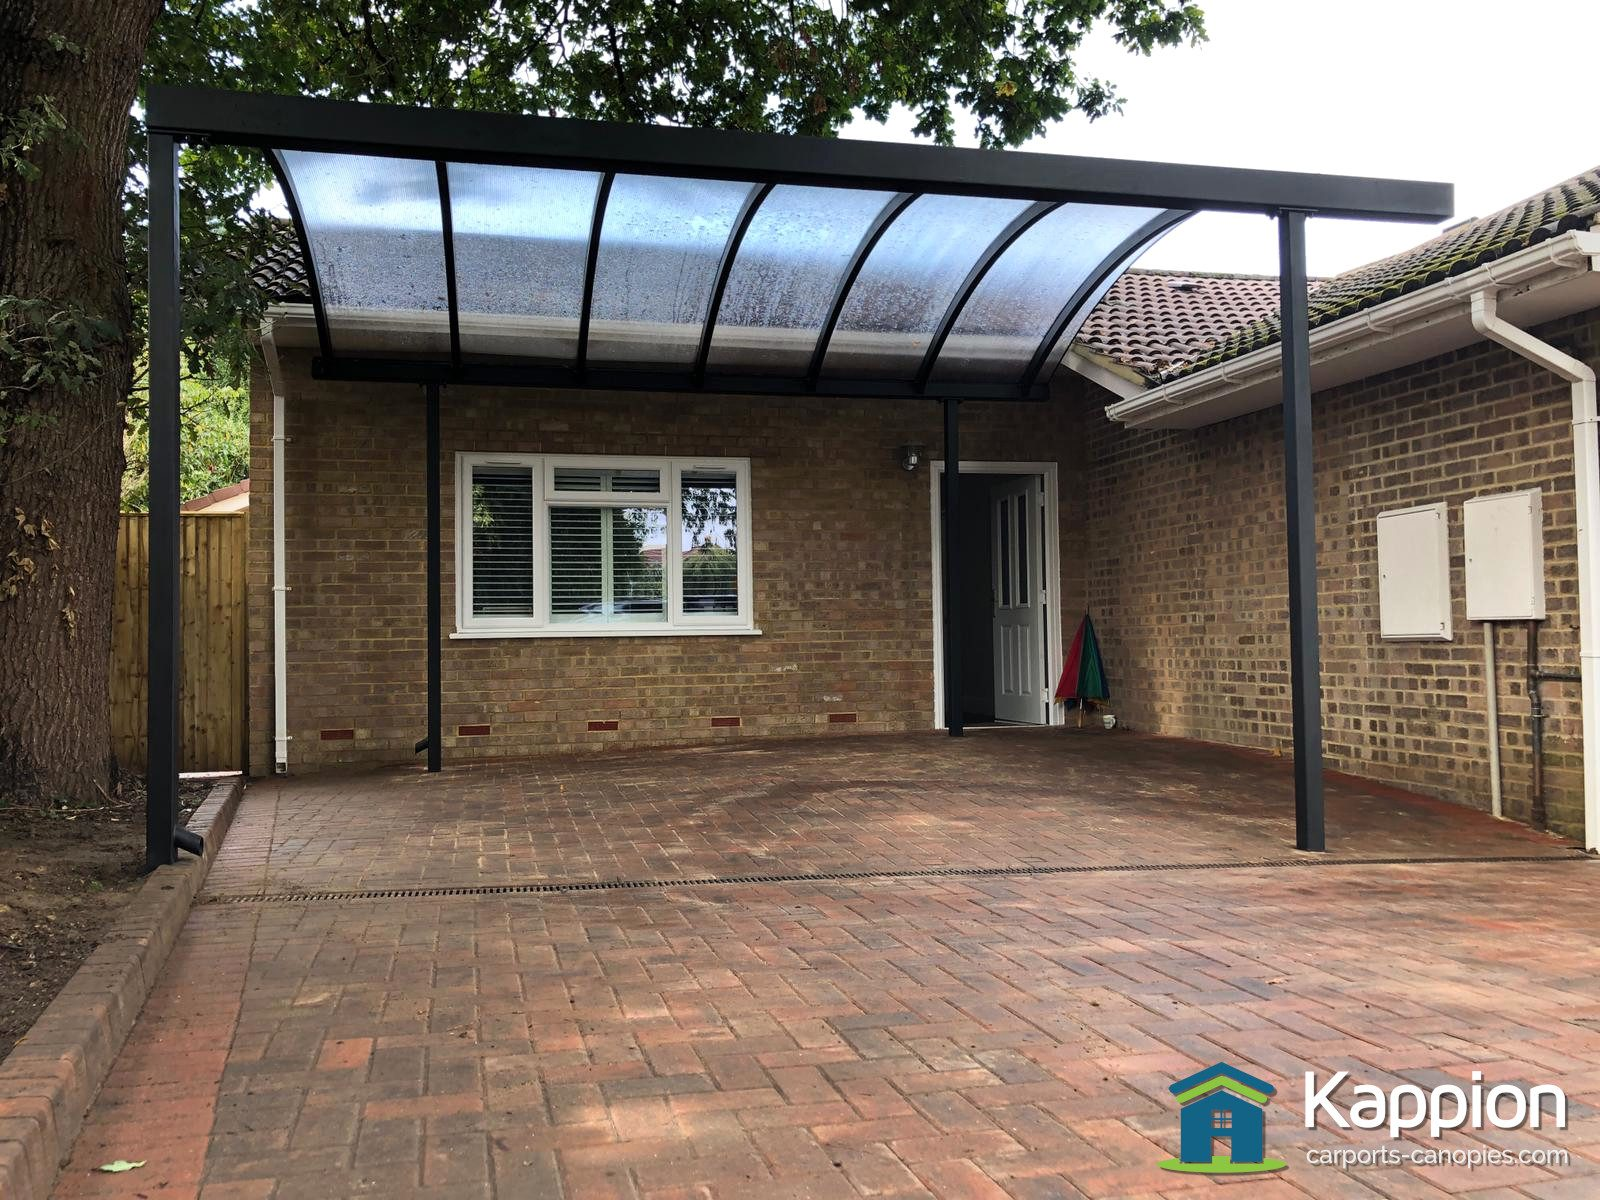 Entrance-Canopy-Carport-Karen-005